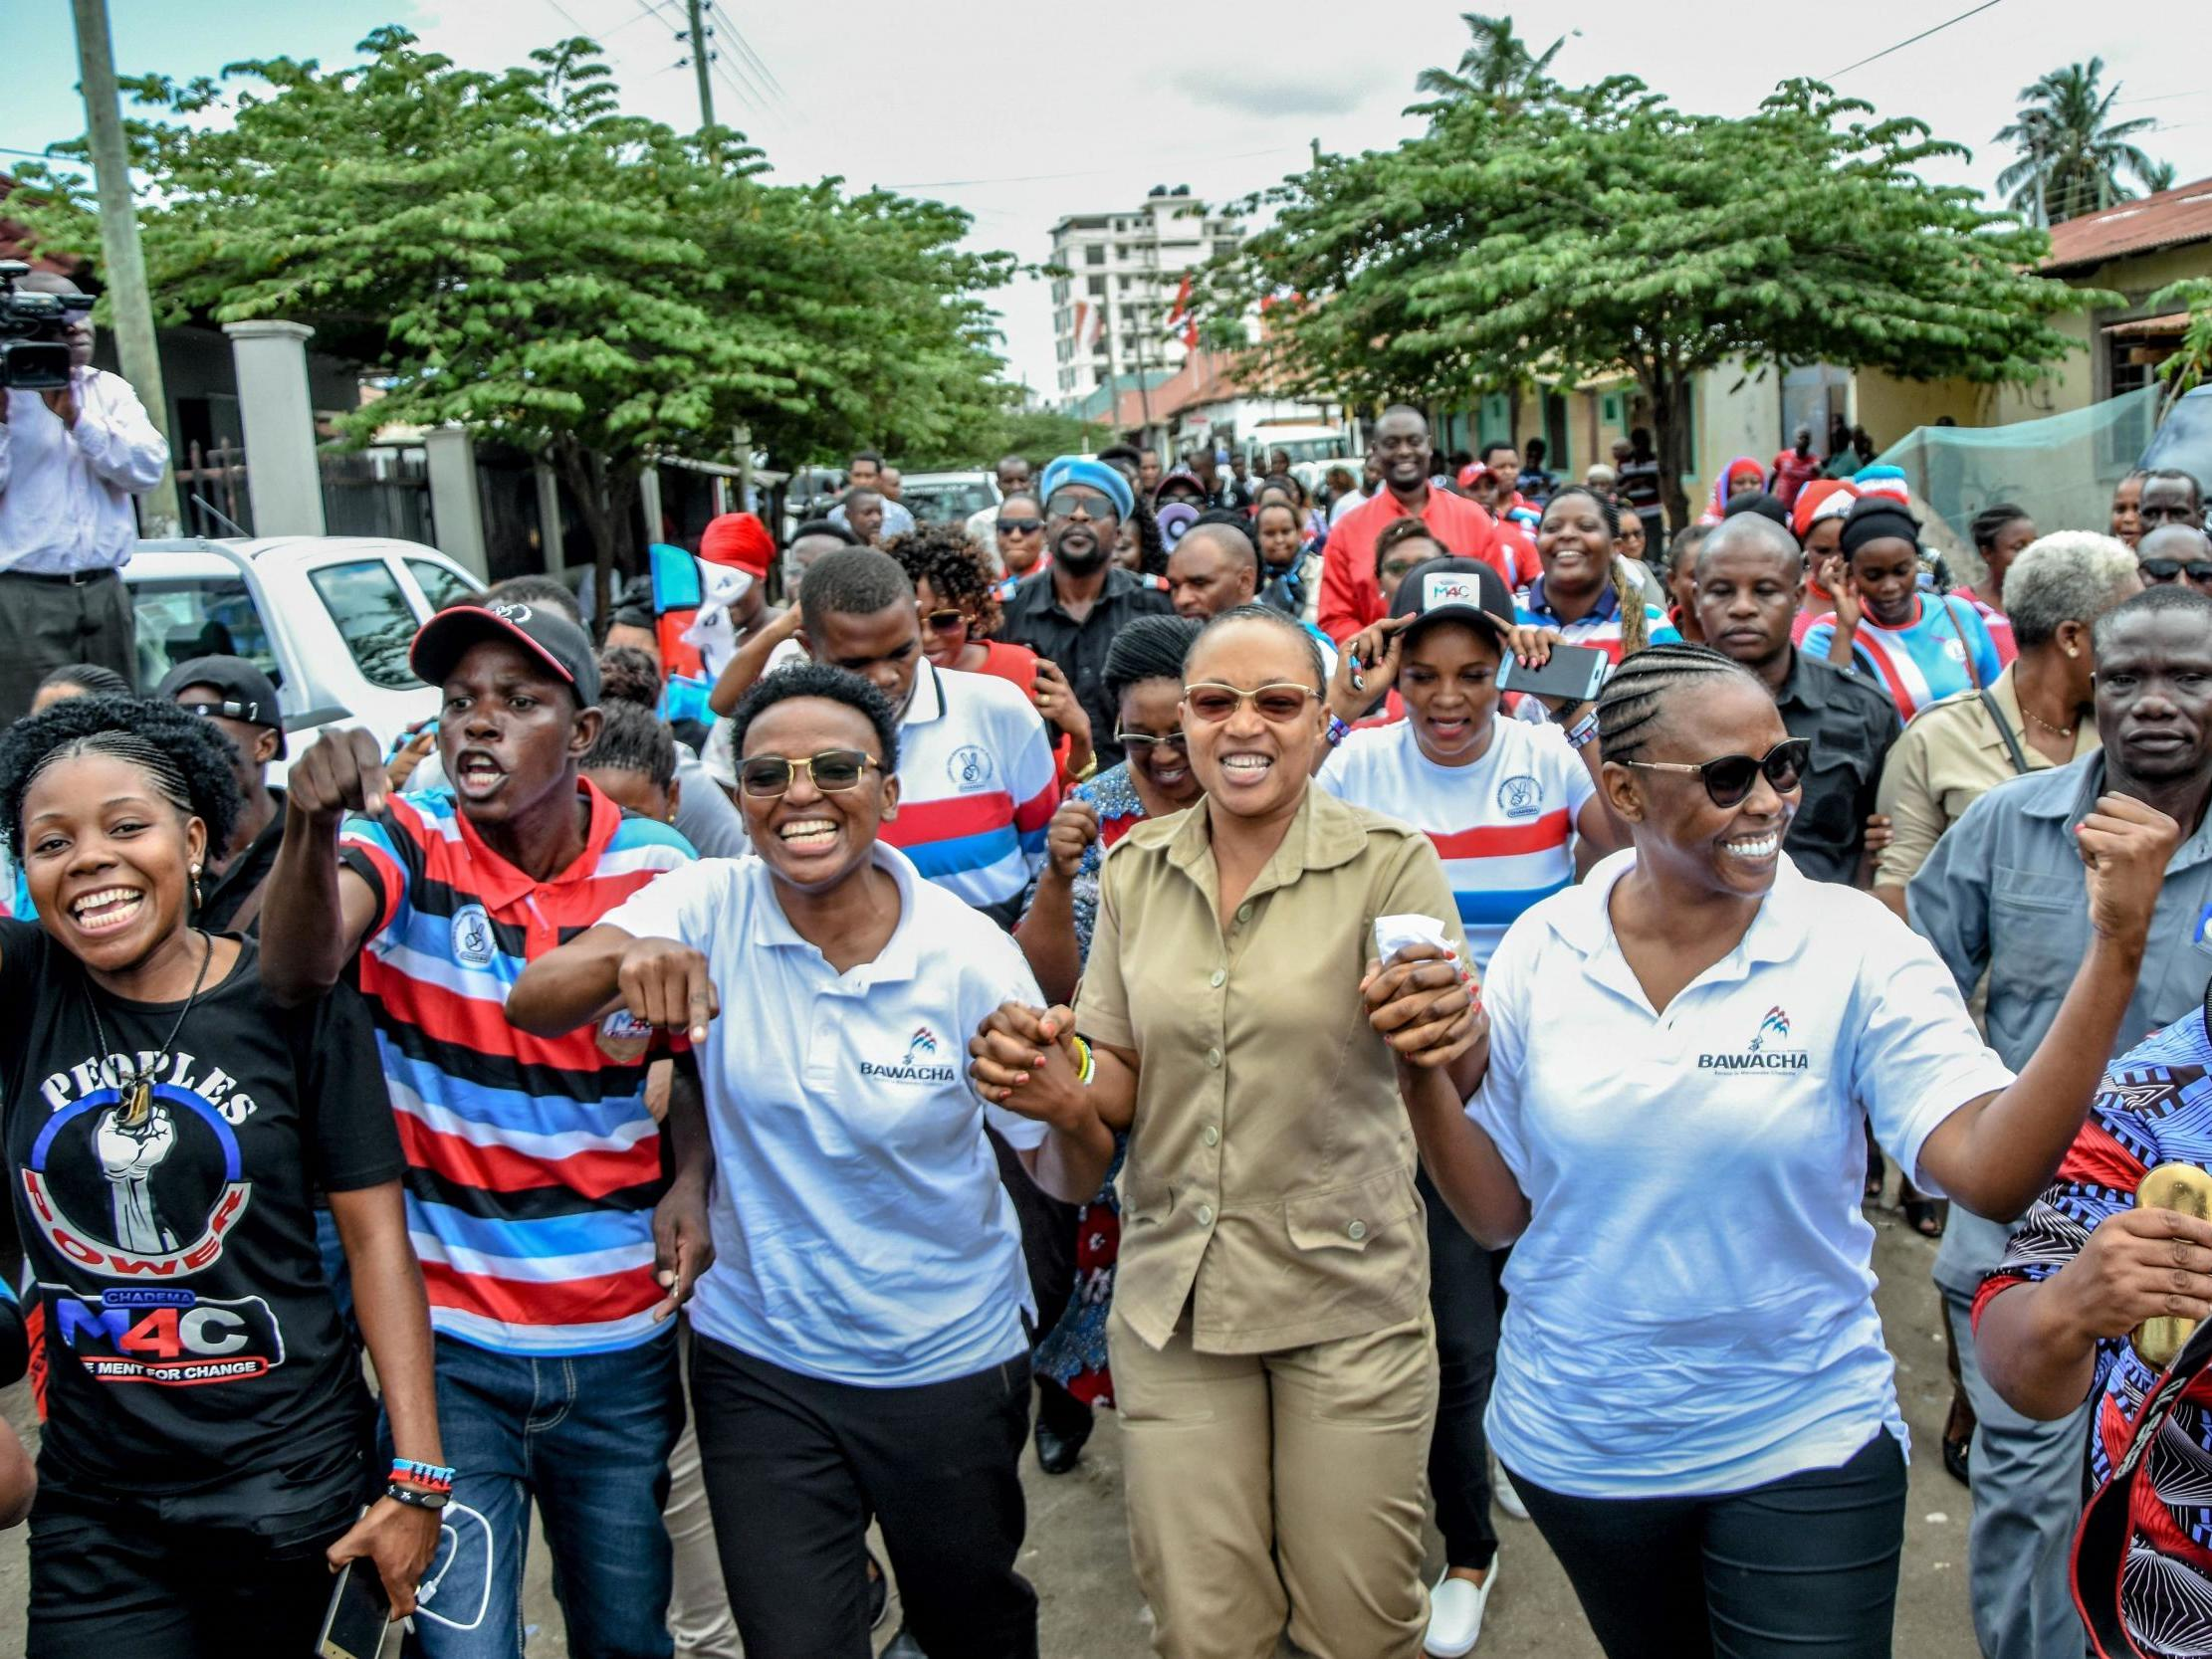 Tanzanians raise £100,000 to support opposition politicians convicted for holding rally | The Independent | The Independent